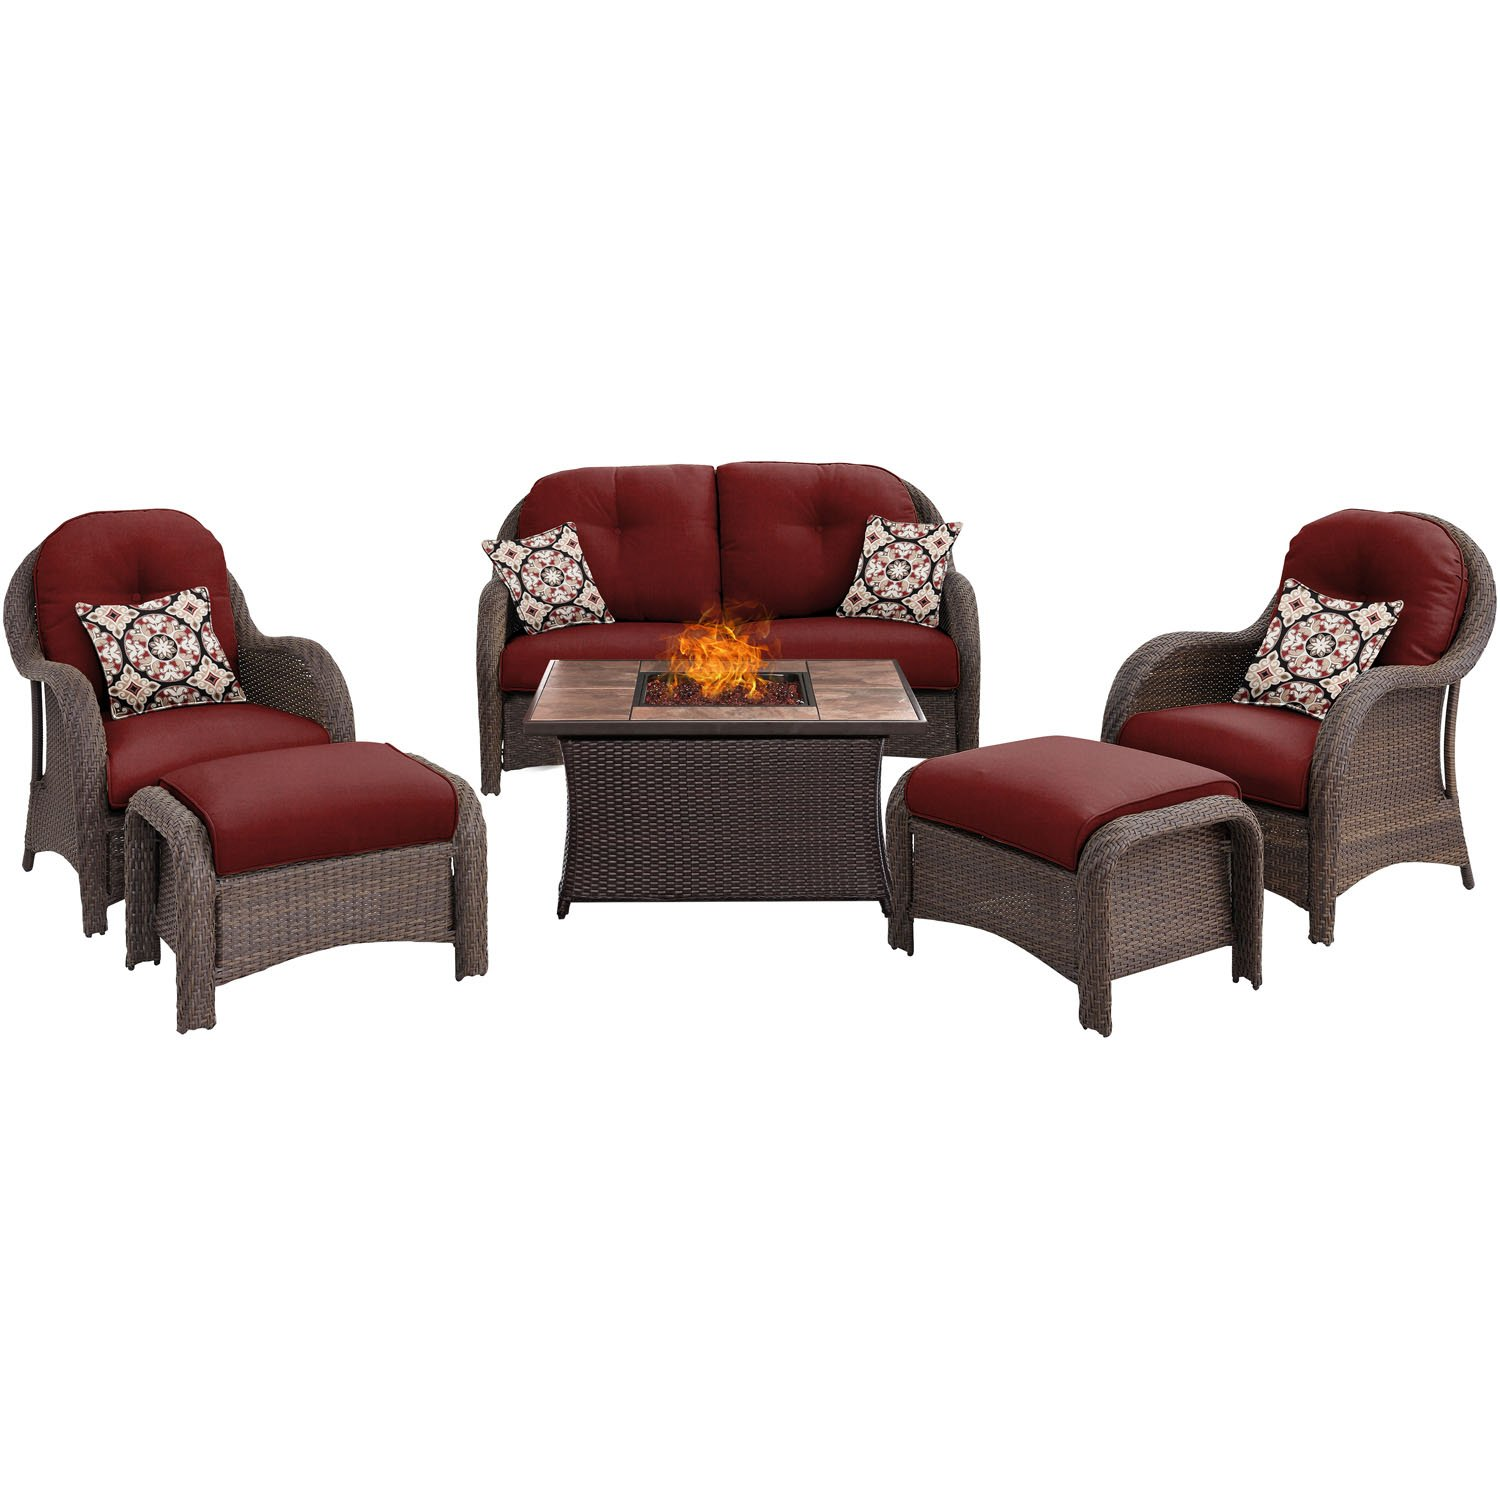 Hanover NEWPT6PCFP RED TN Newport 6 Piece Woven Seating Set Table Outdoor Furniture